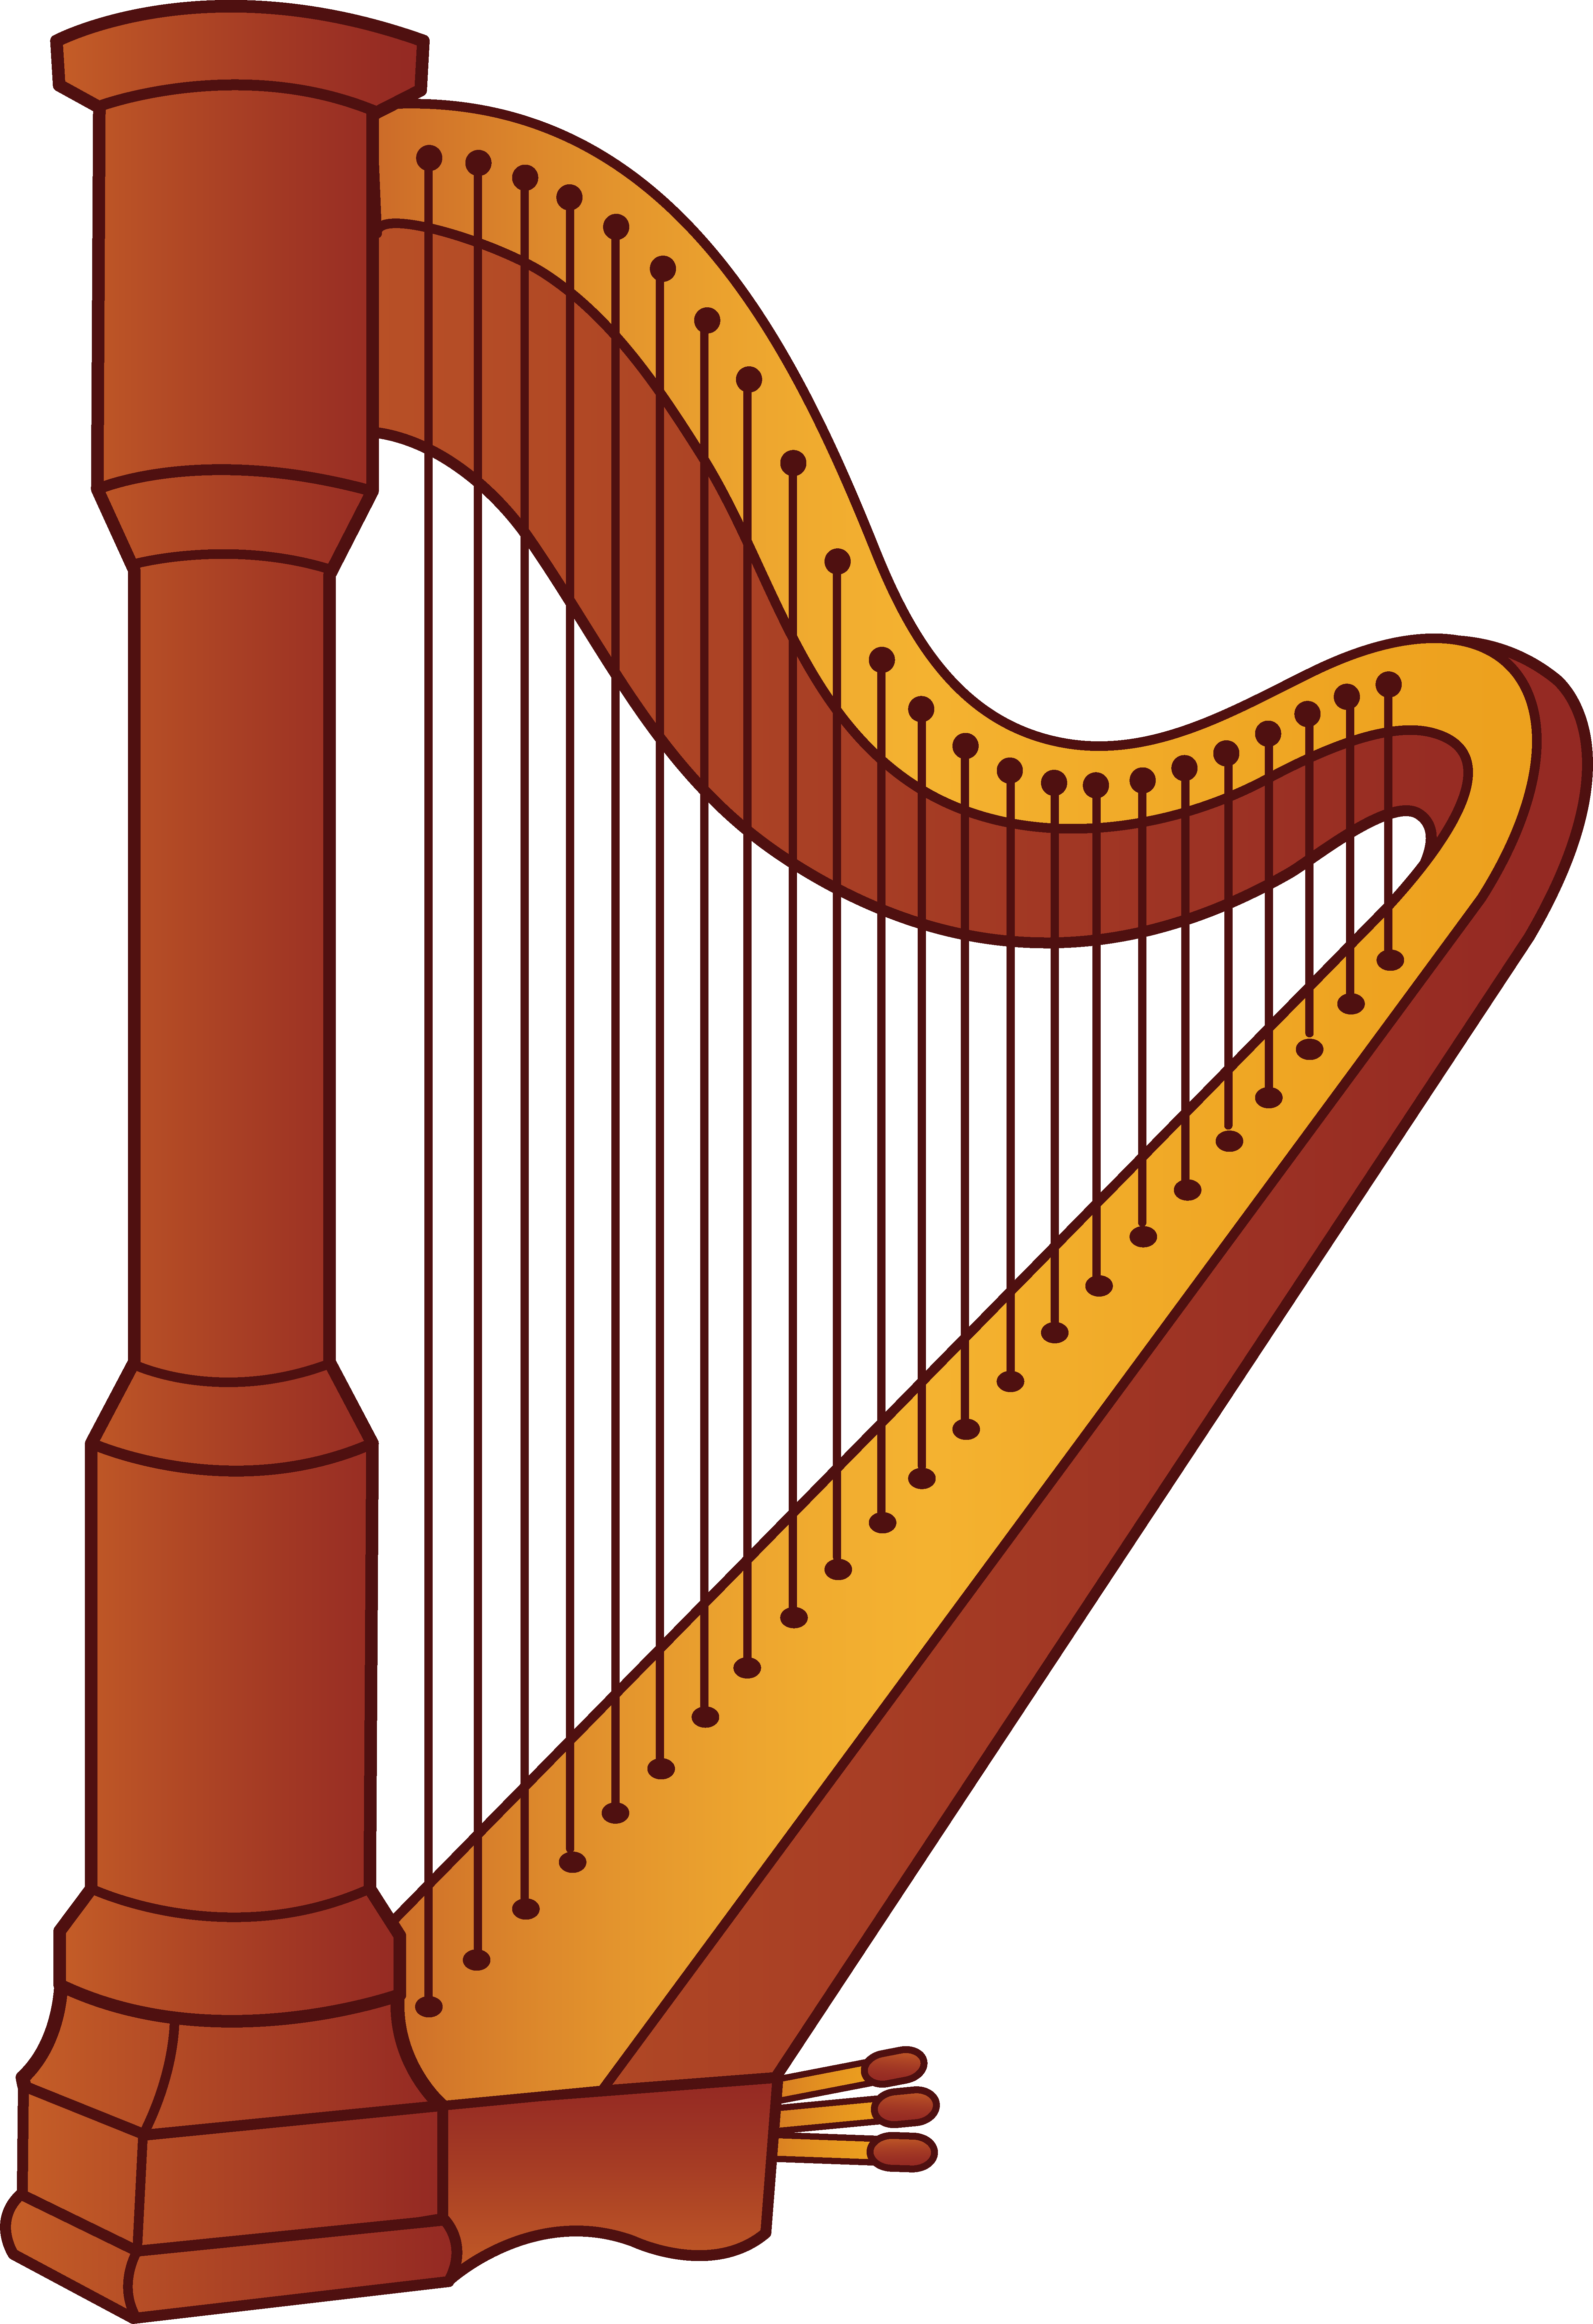 Free Harp Cliparts, Download Free Clip Art, Free Clip Art on.